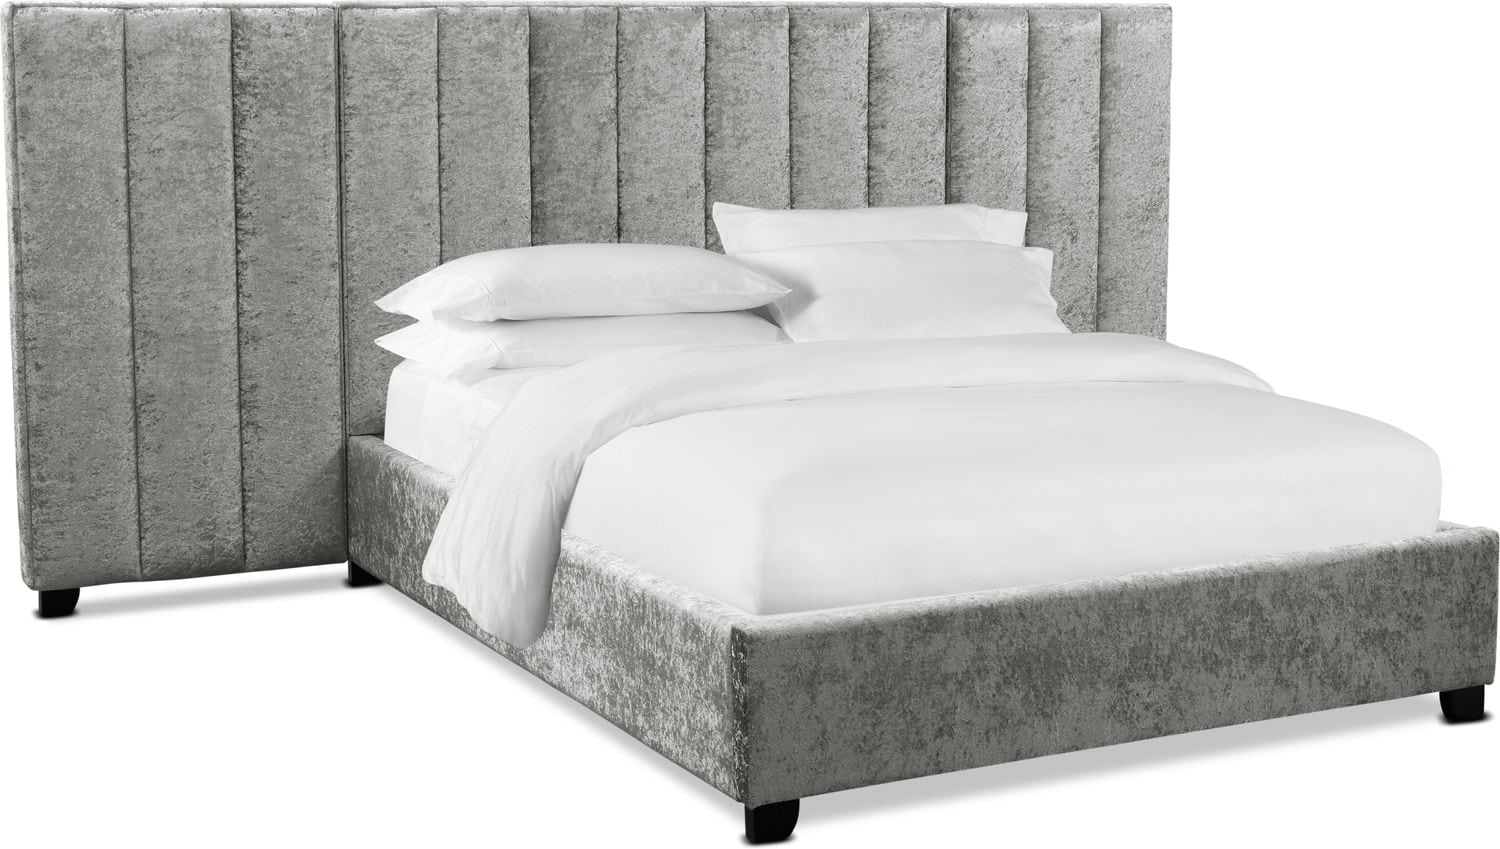 Bedroom Furniture - Kiera Upholstered Channel Wall Bed